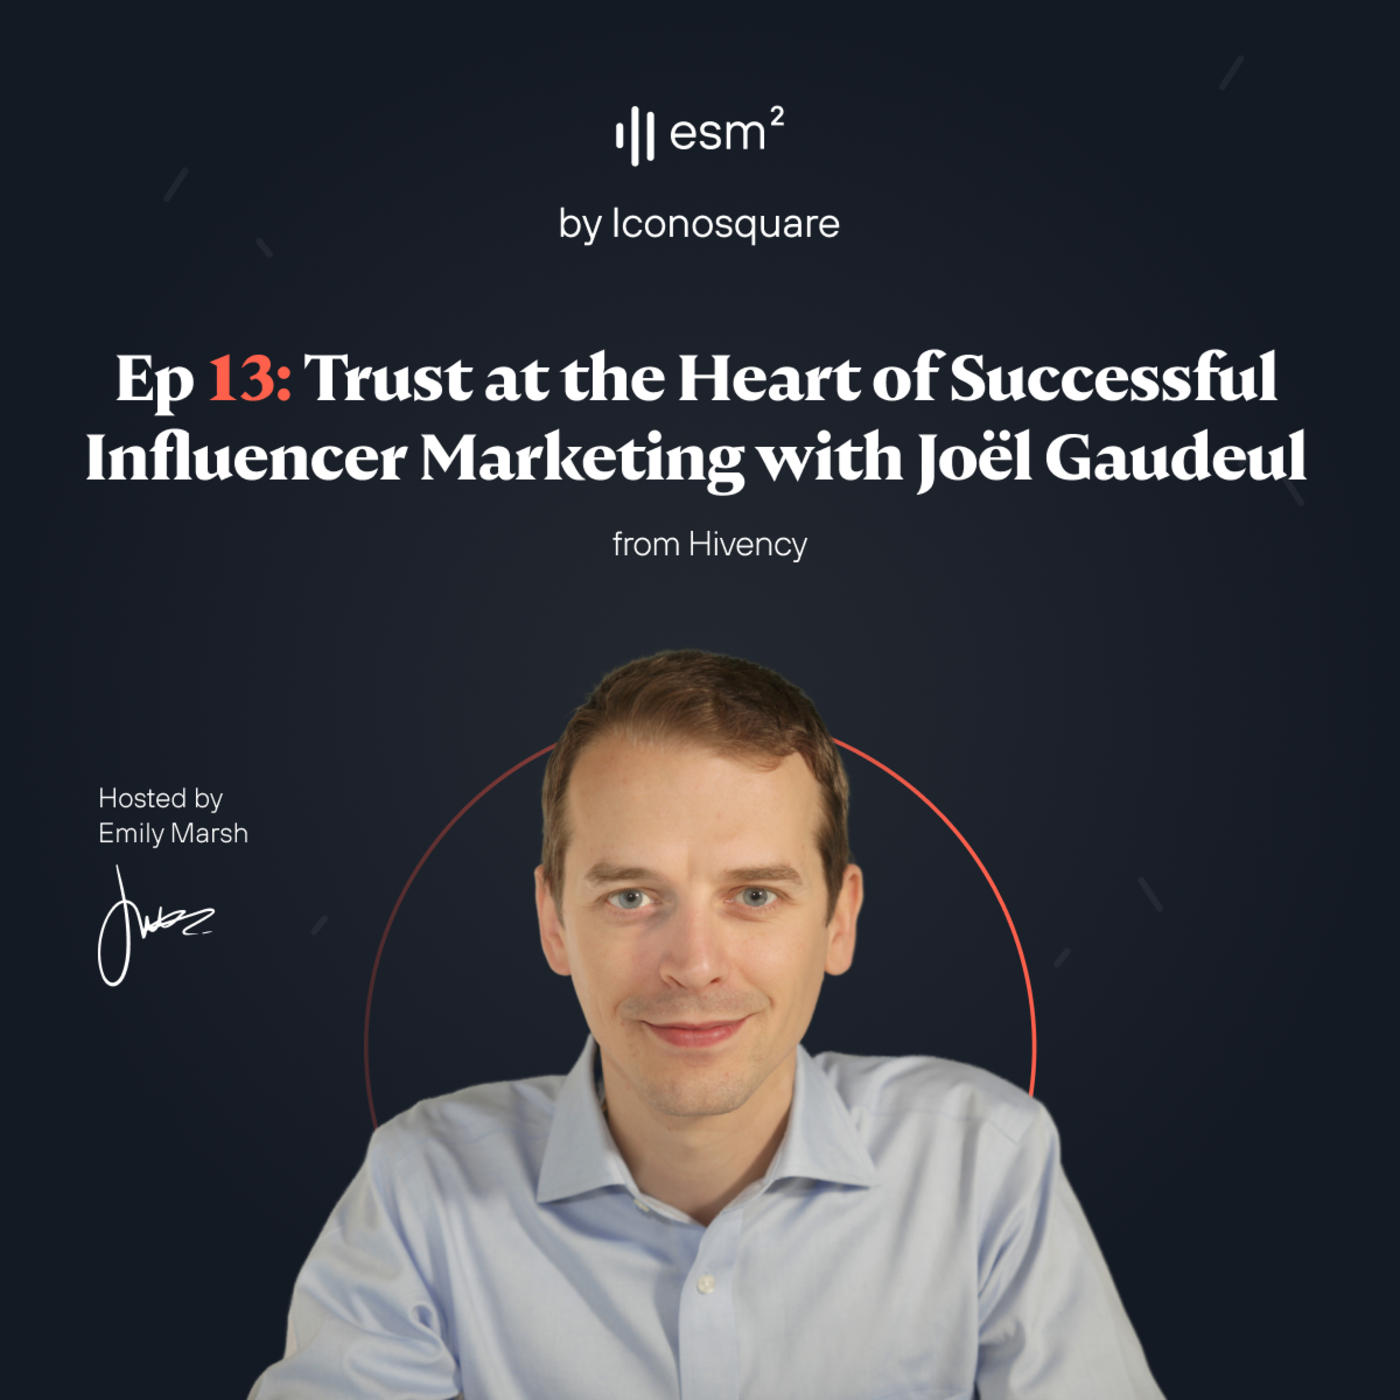 """""""Trust at the Heart of Successful Influencer Marketing"""" - Joël Gaudeul from Hivency"""